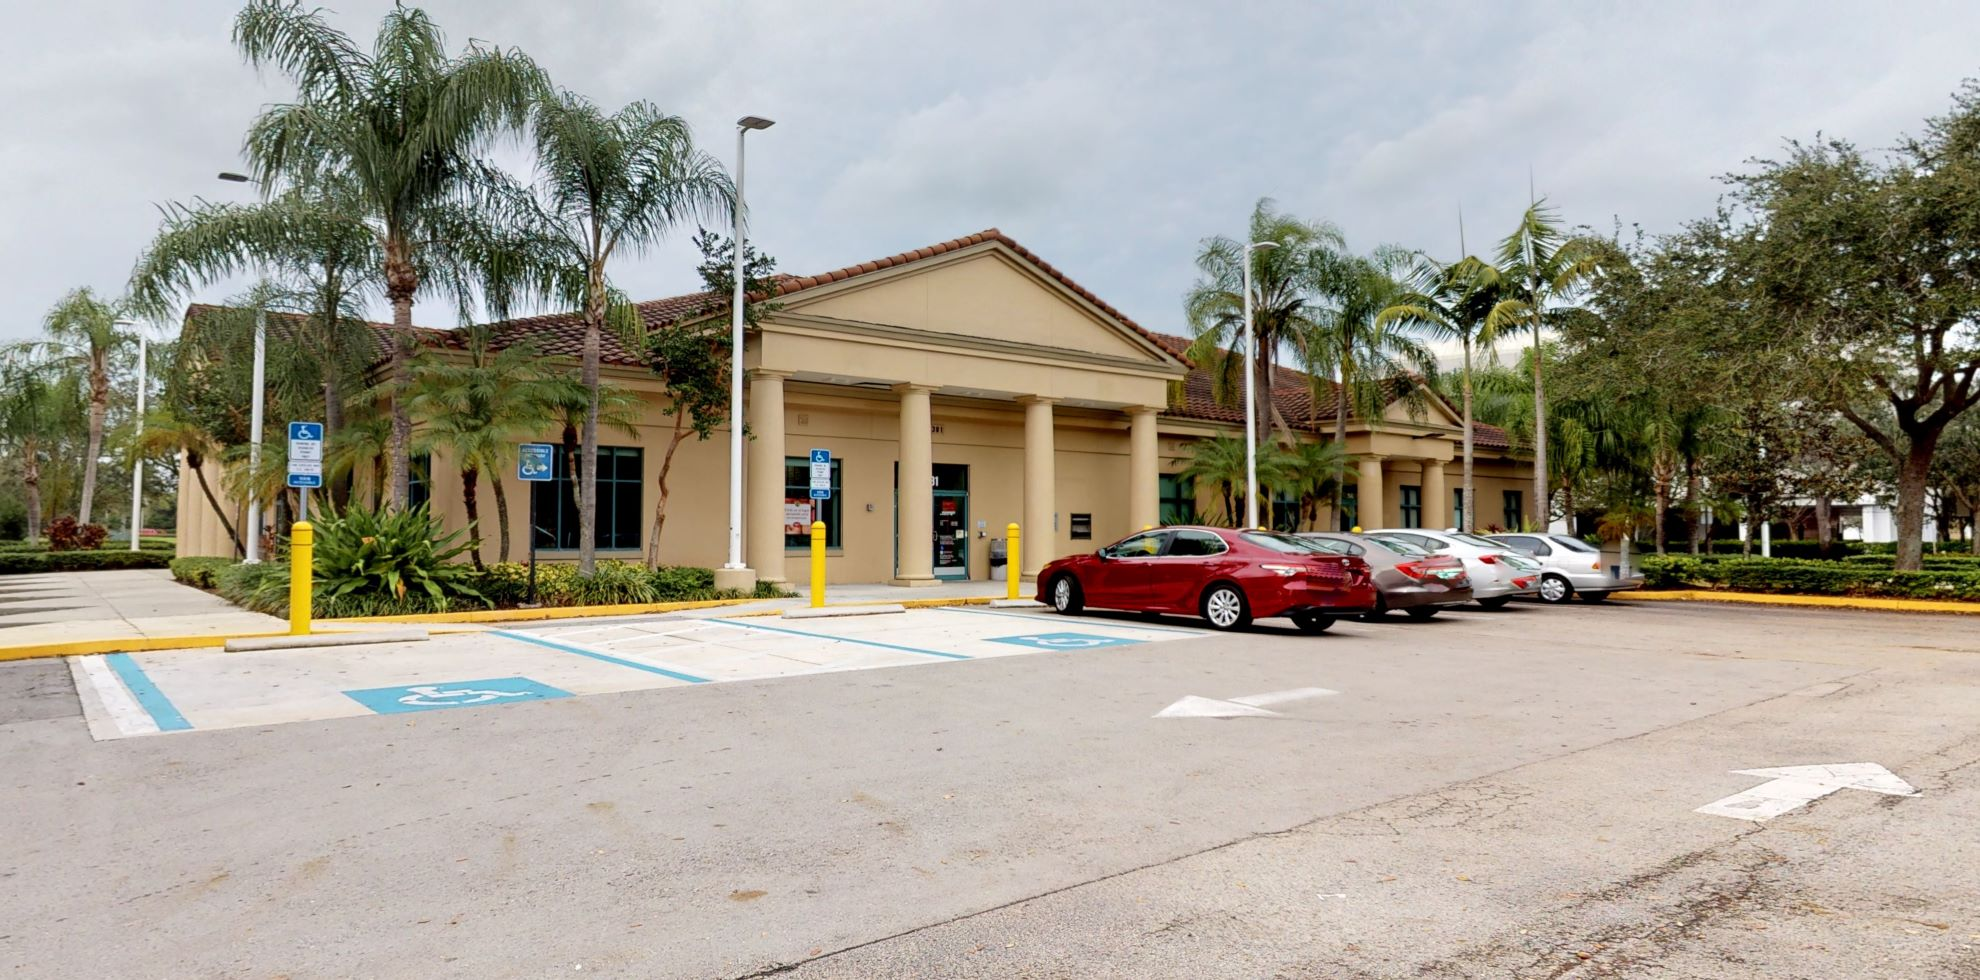 Bank of America financial center with walk-up ATM | 1381 Weston Rd, Weston, FL 33326